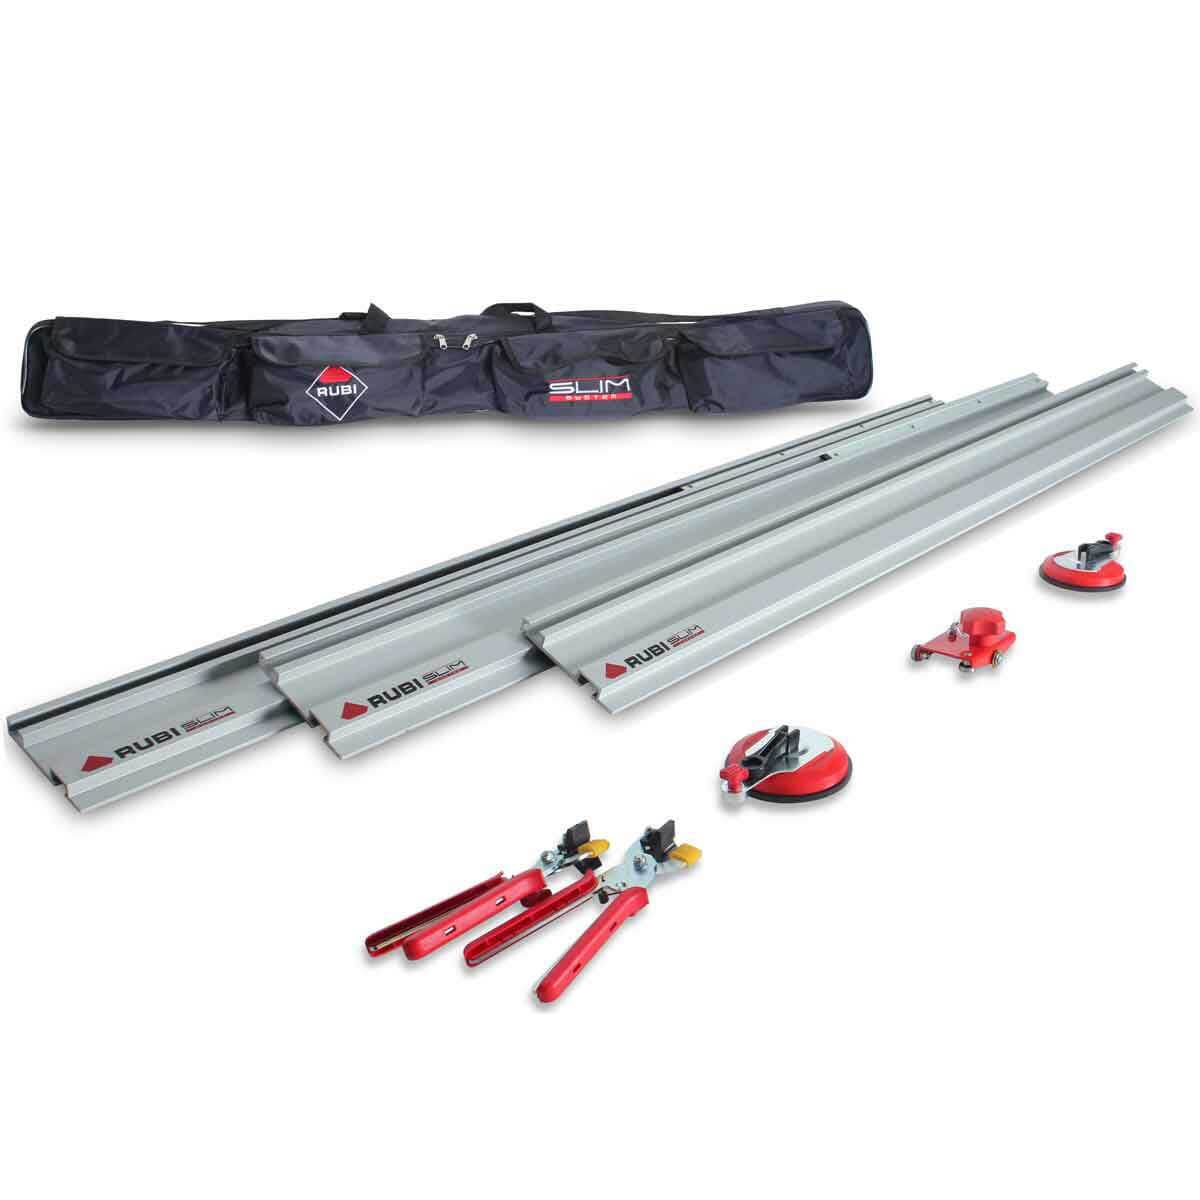 Rubi Slim Tile Cutter Kit